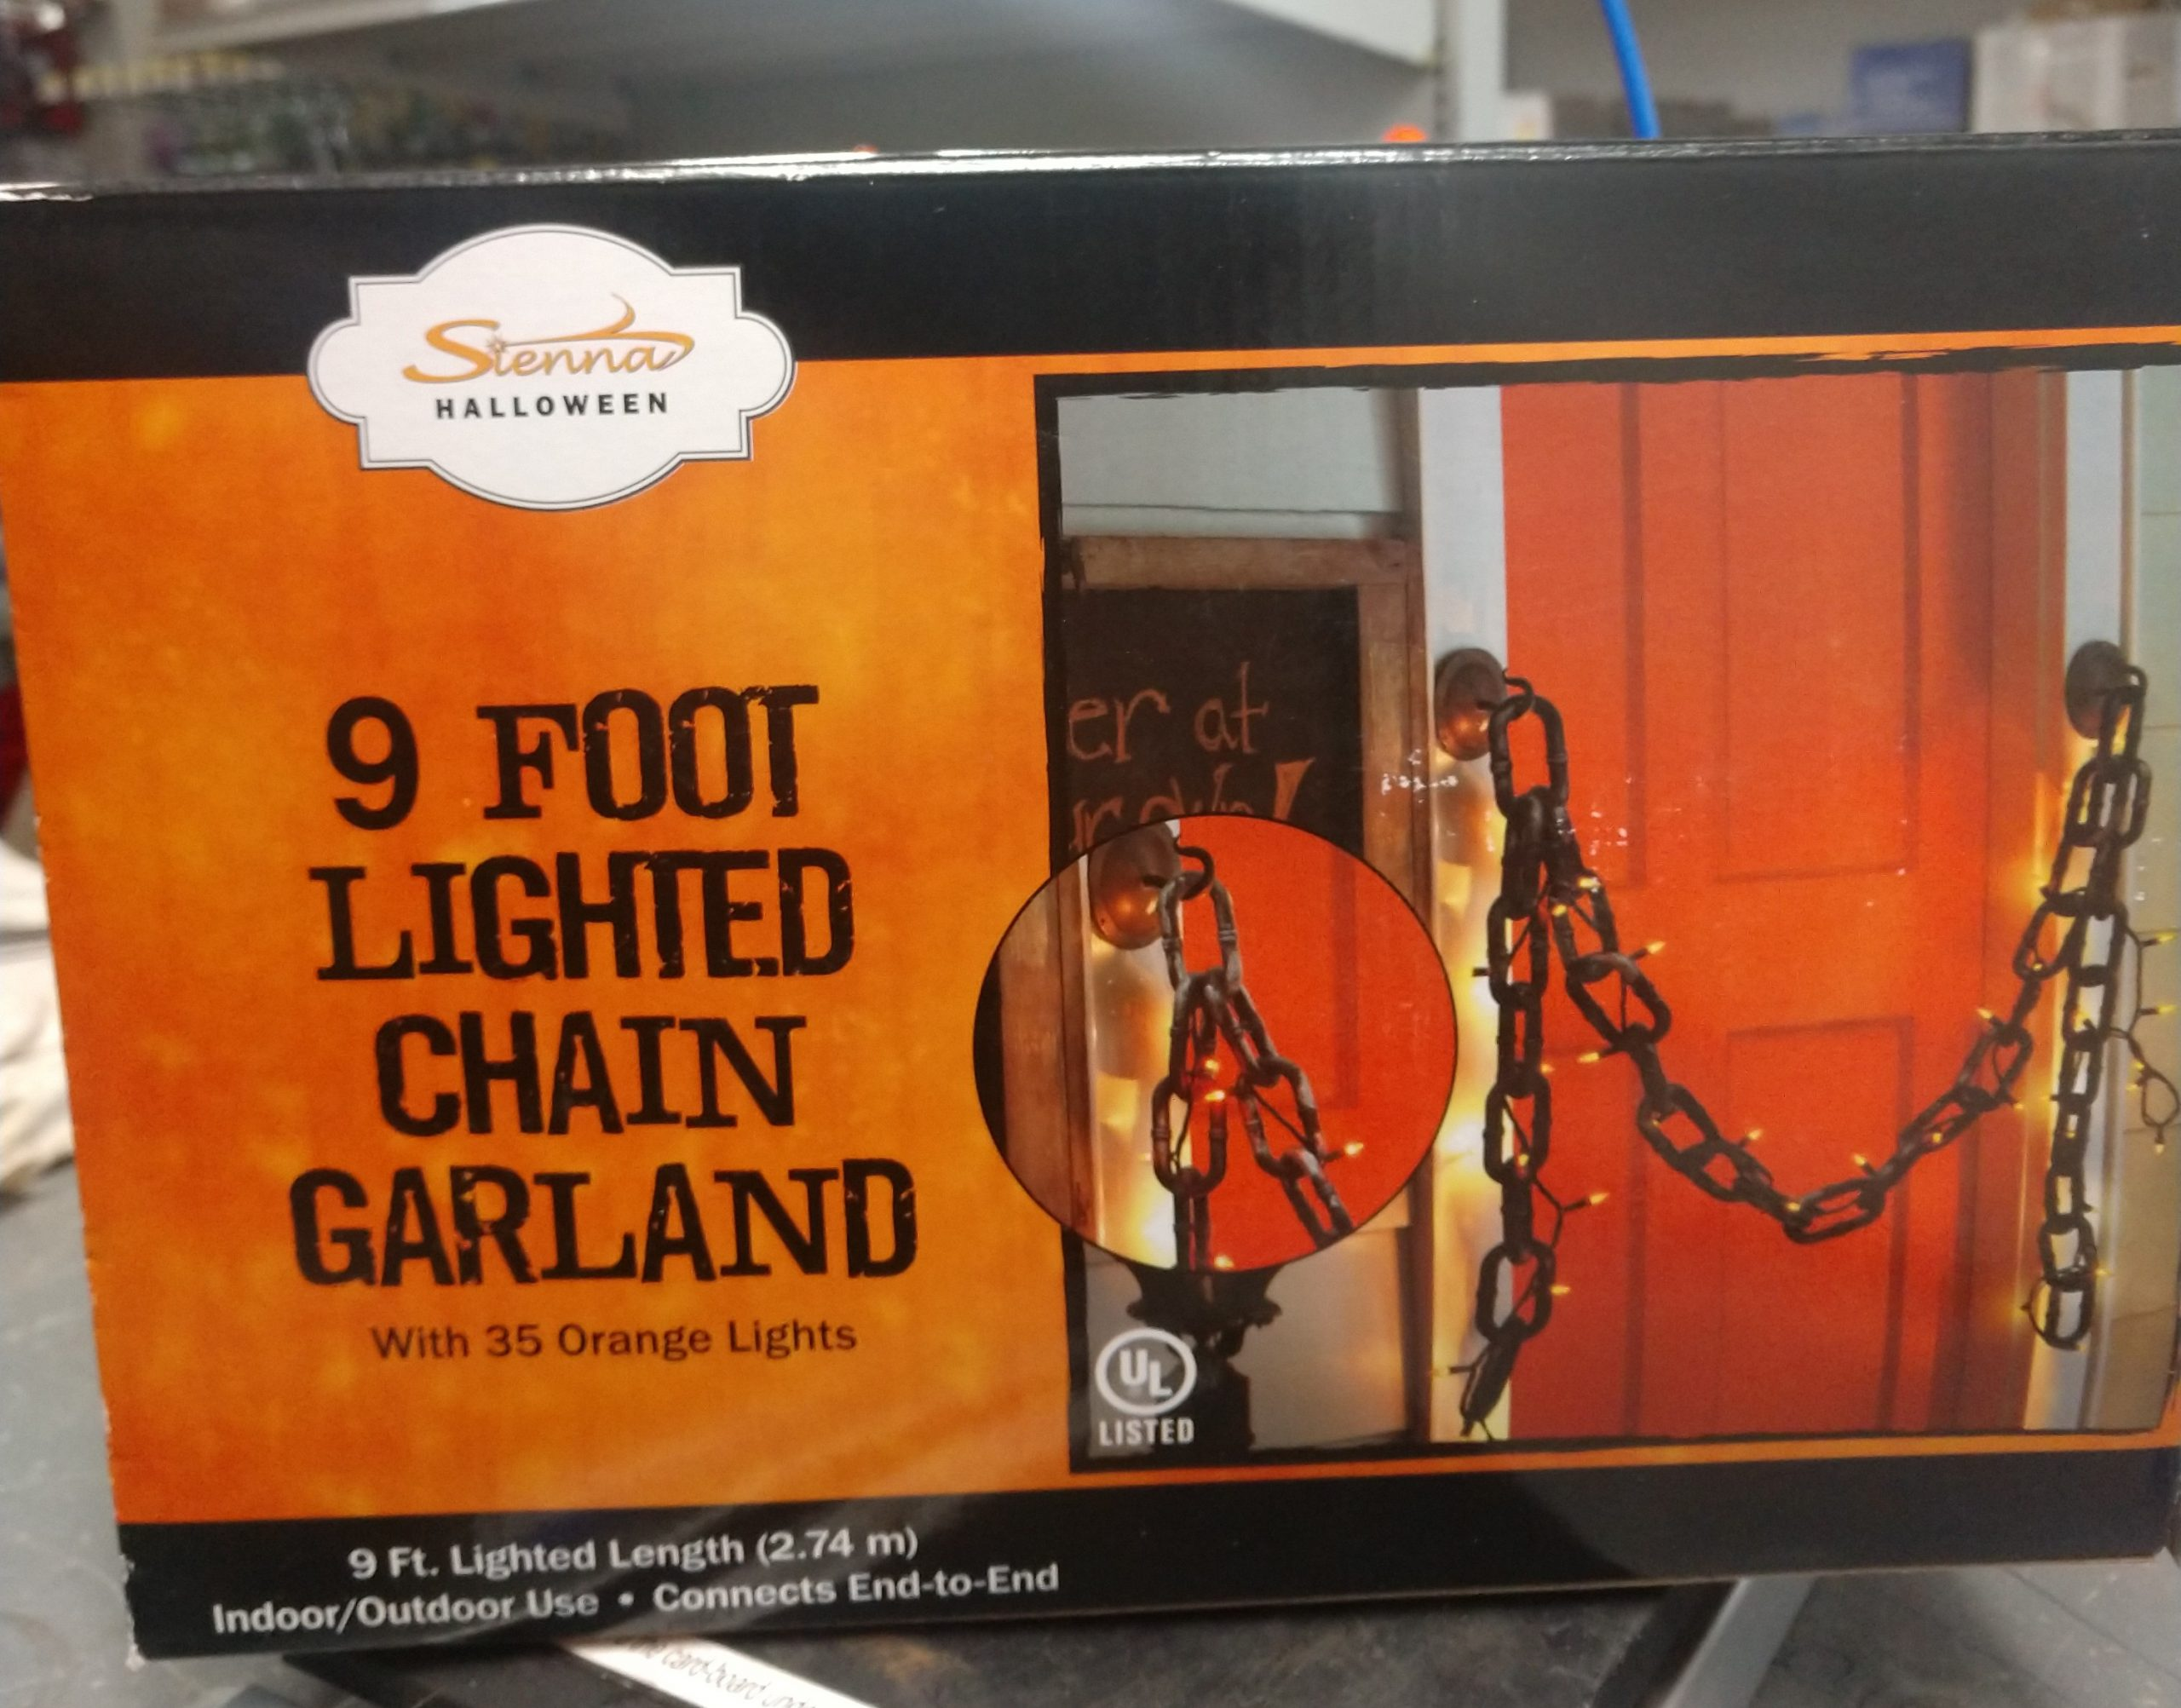 9 Foot Lit Spooky Halloween Chain Garland With 35 Mini